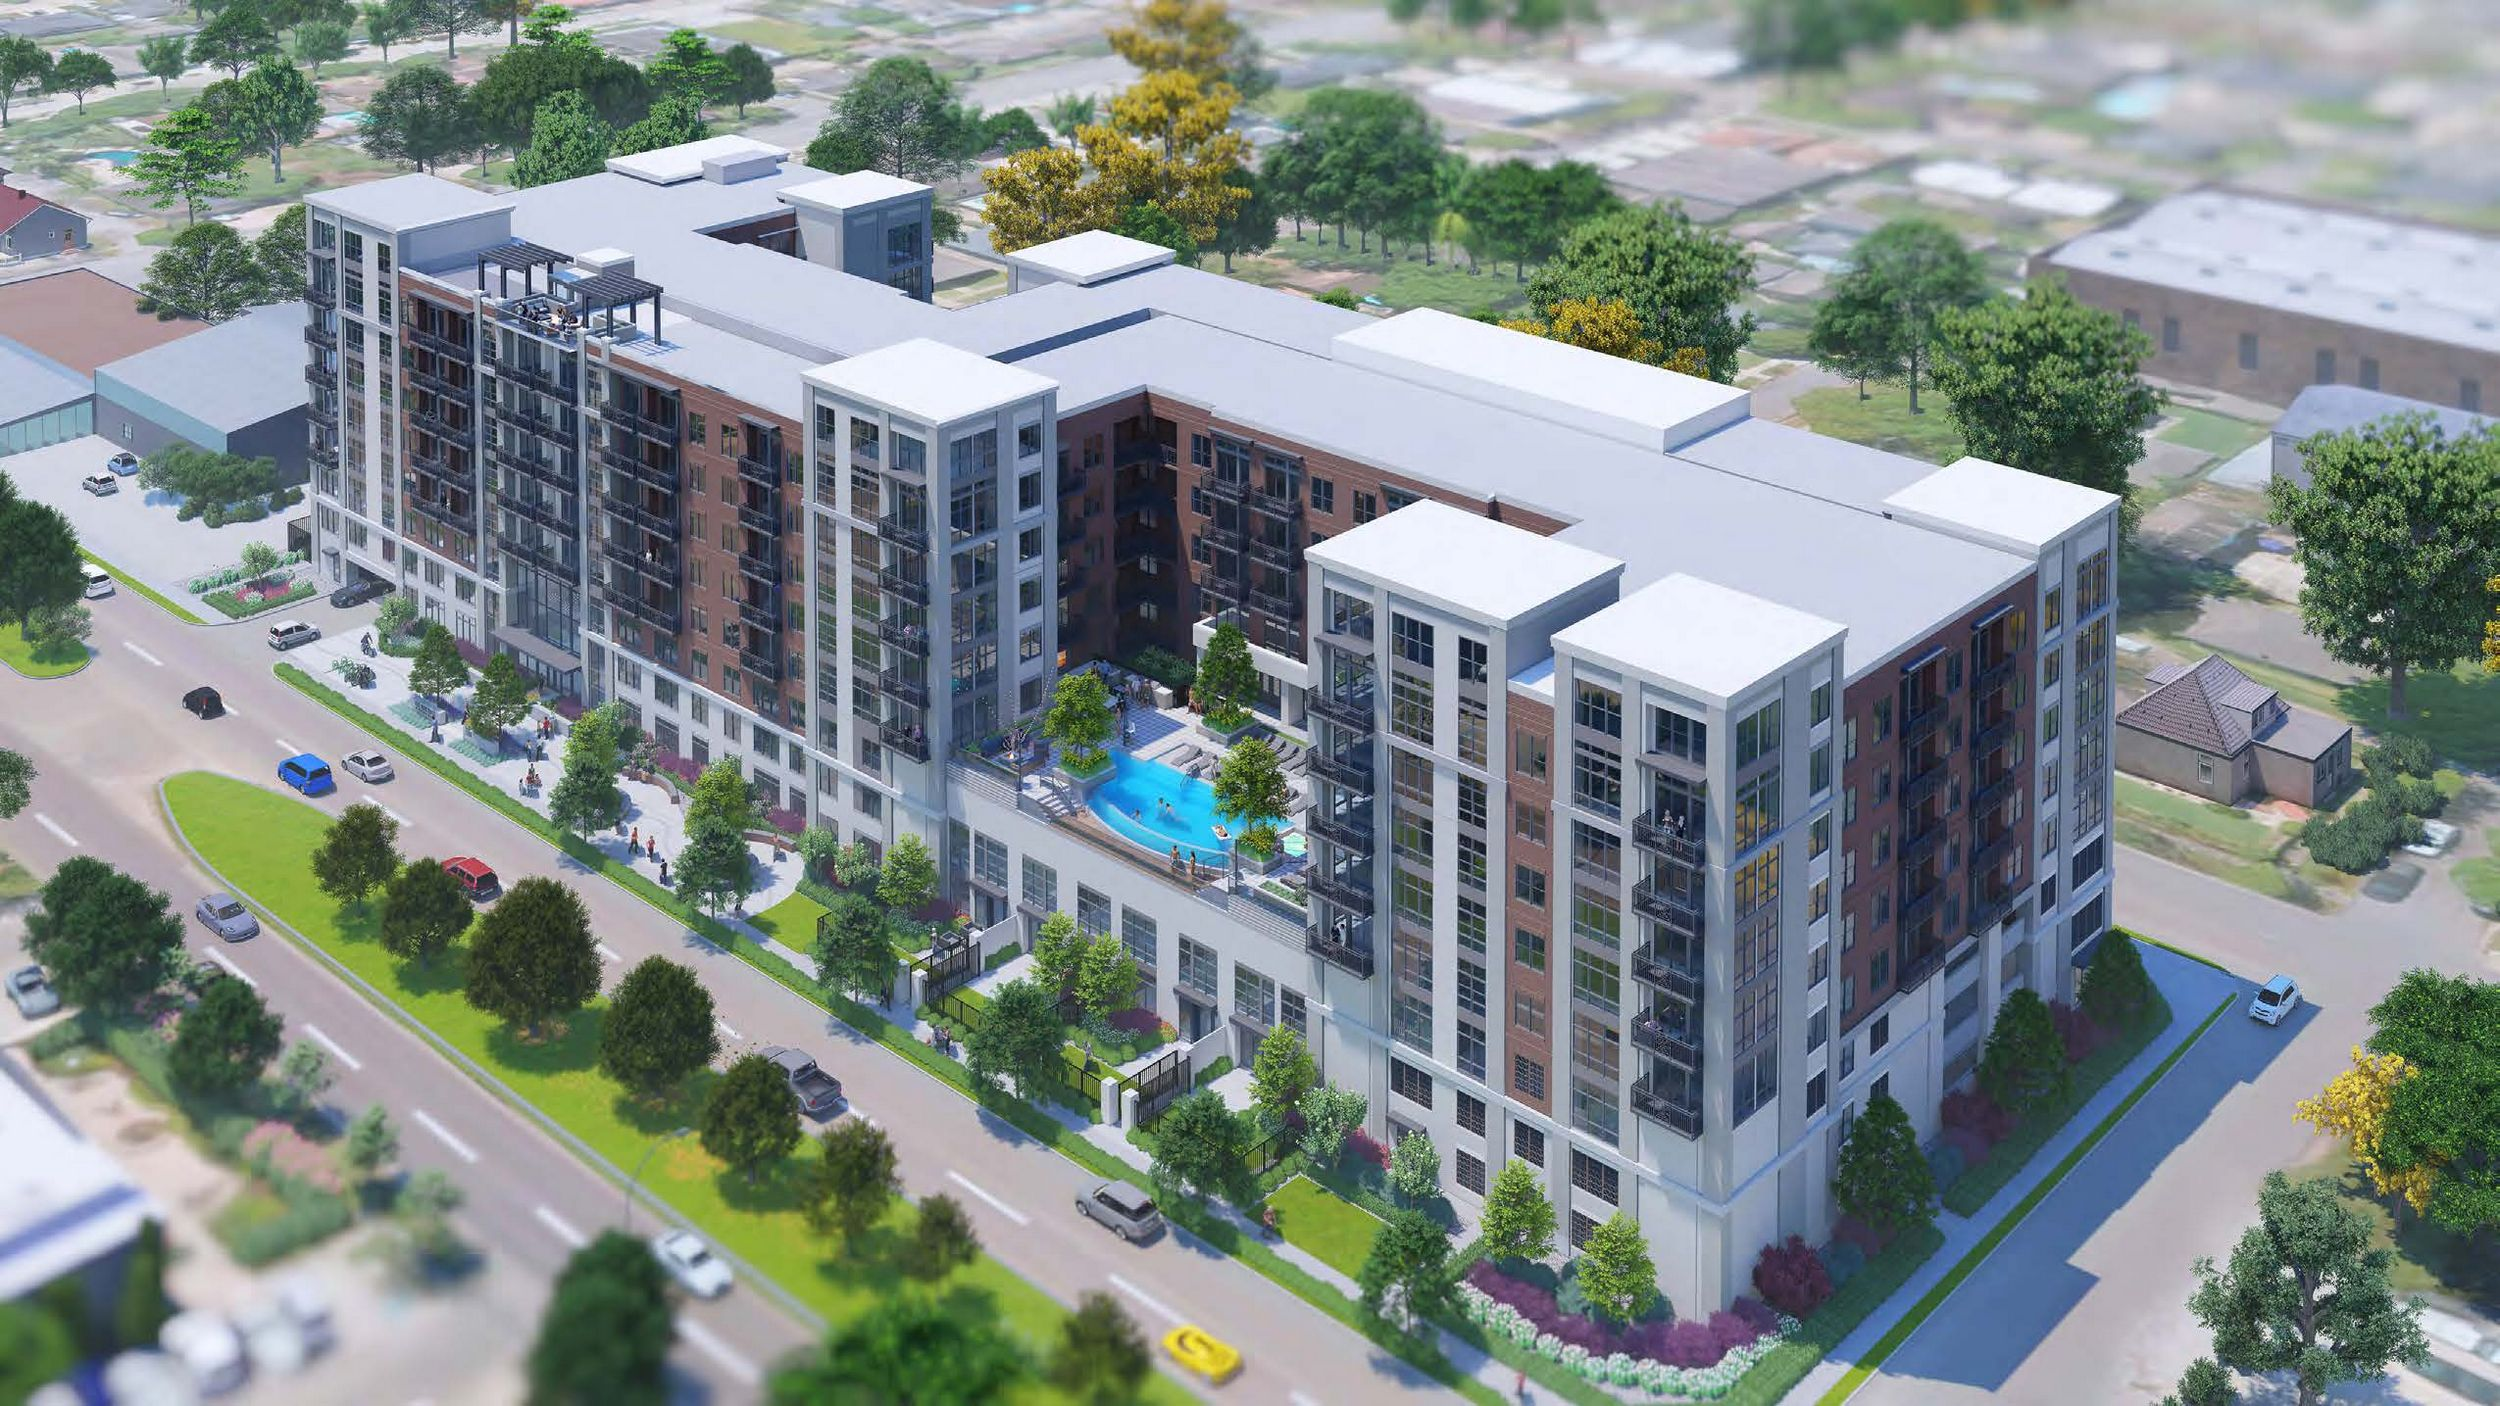 Rendering of outside view of apartment building